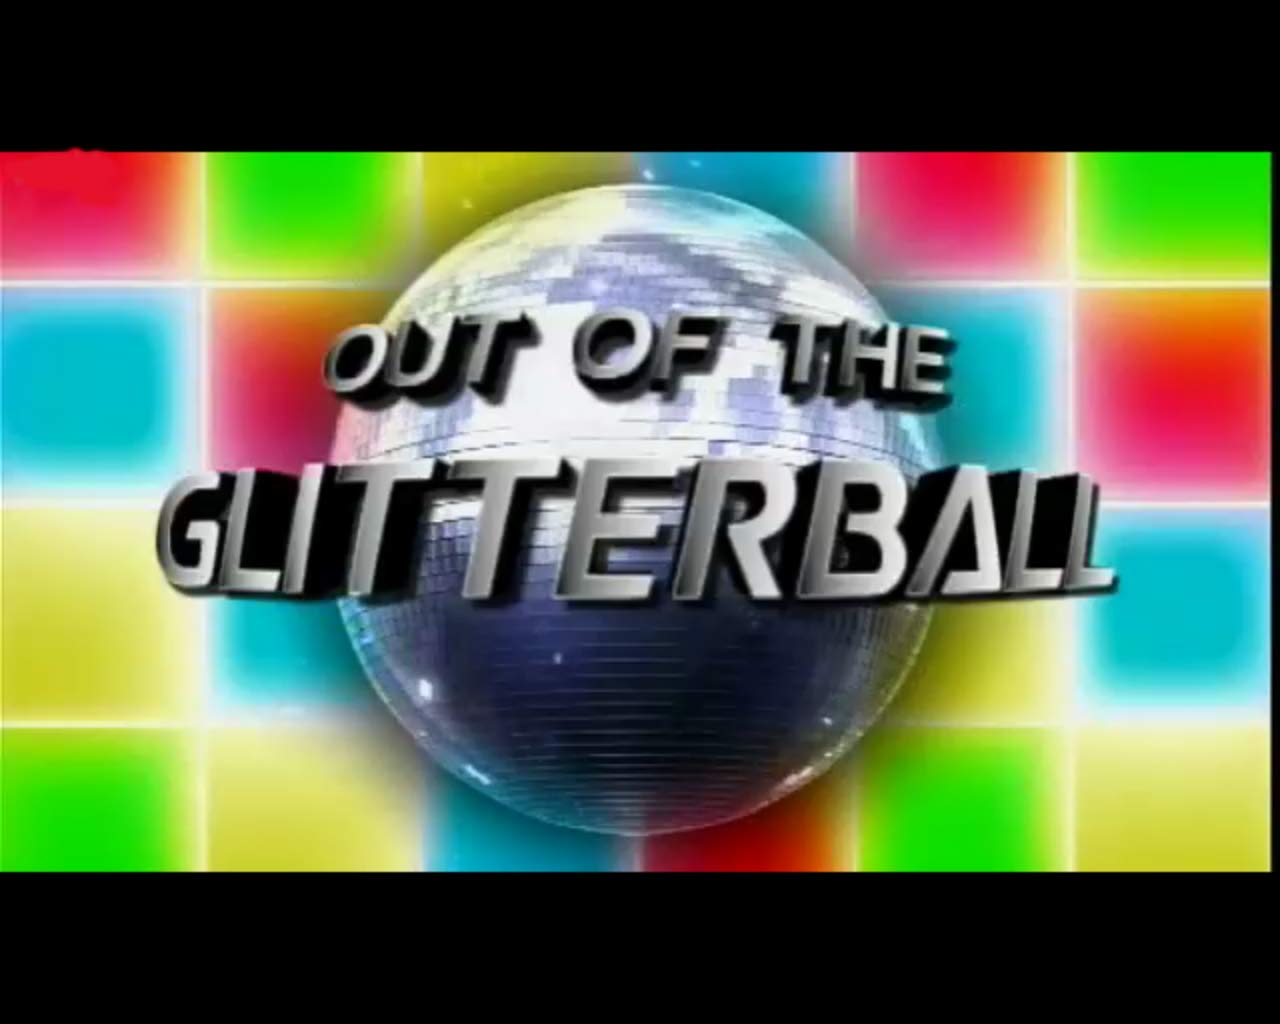 The 'Out of the Glitterball' segment logo